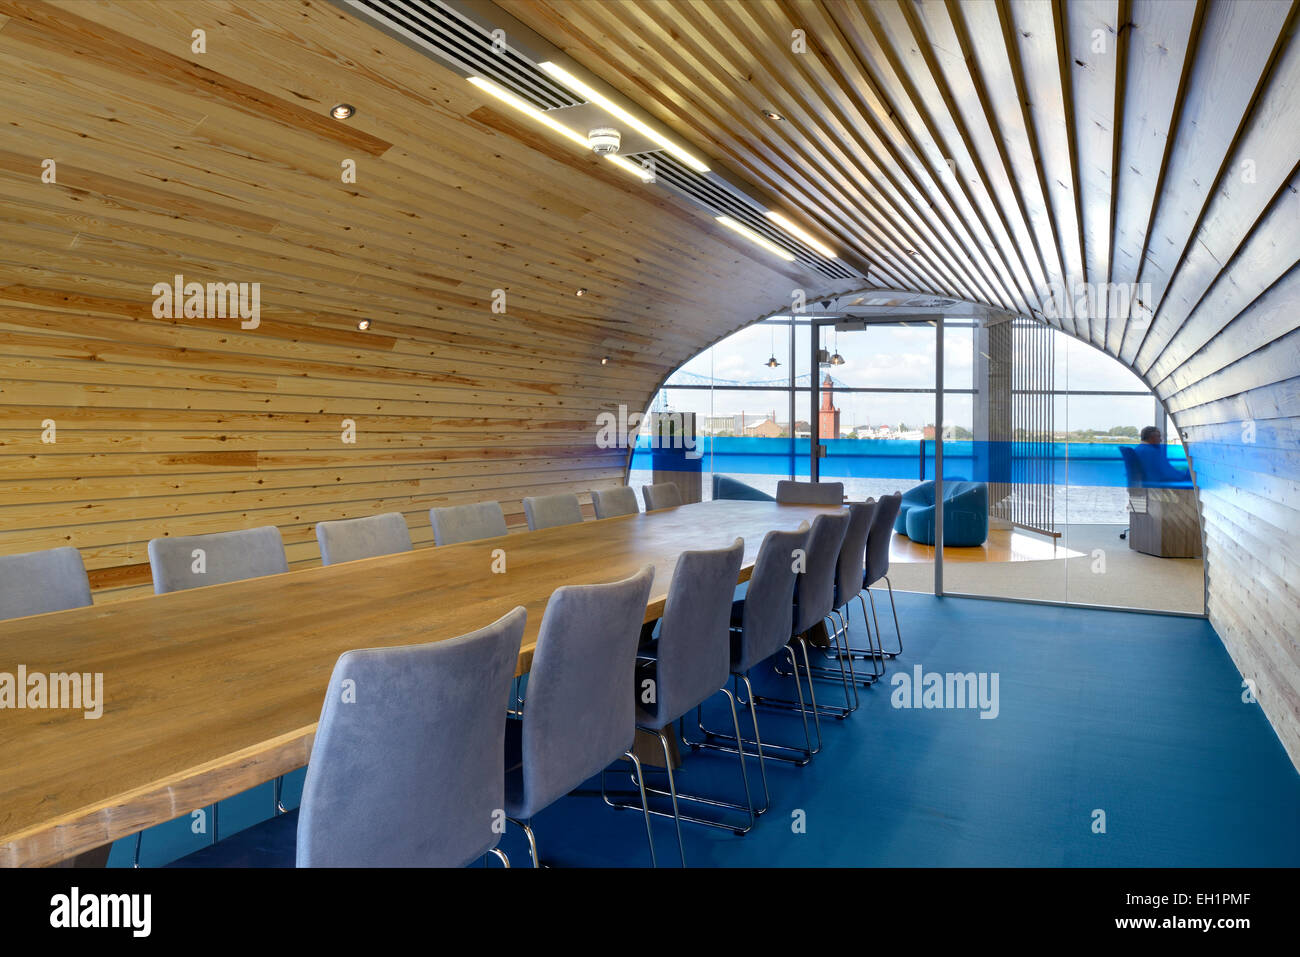 Wood panelled conference room with arched ceiling and blue floor fabrick offices hudson quay